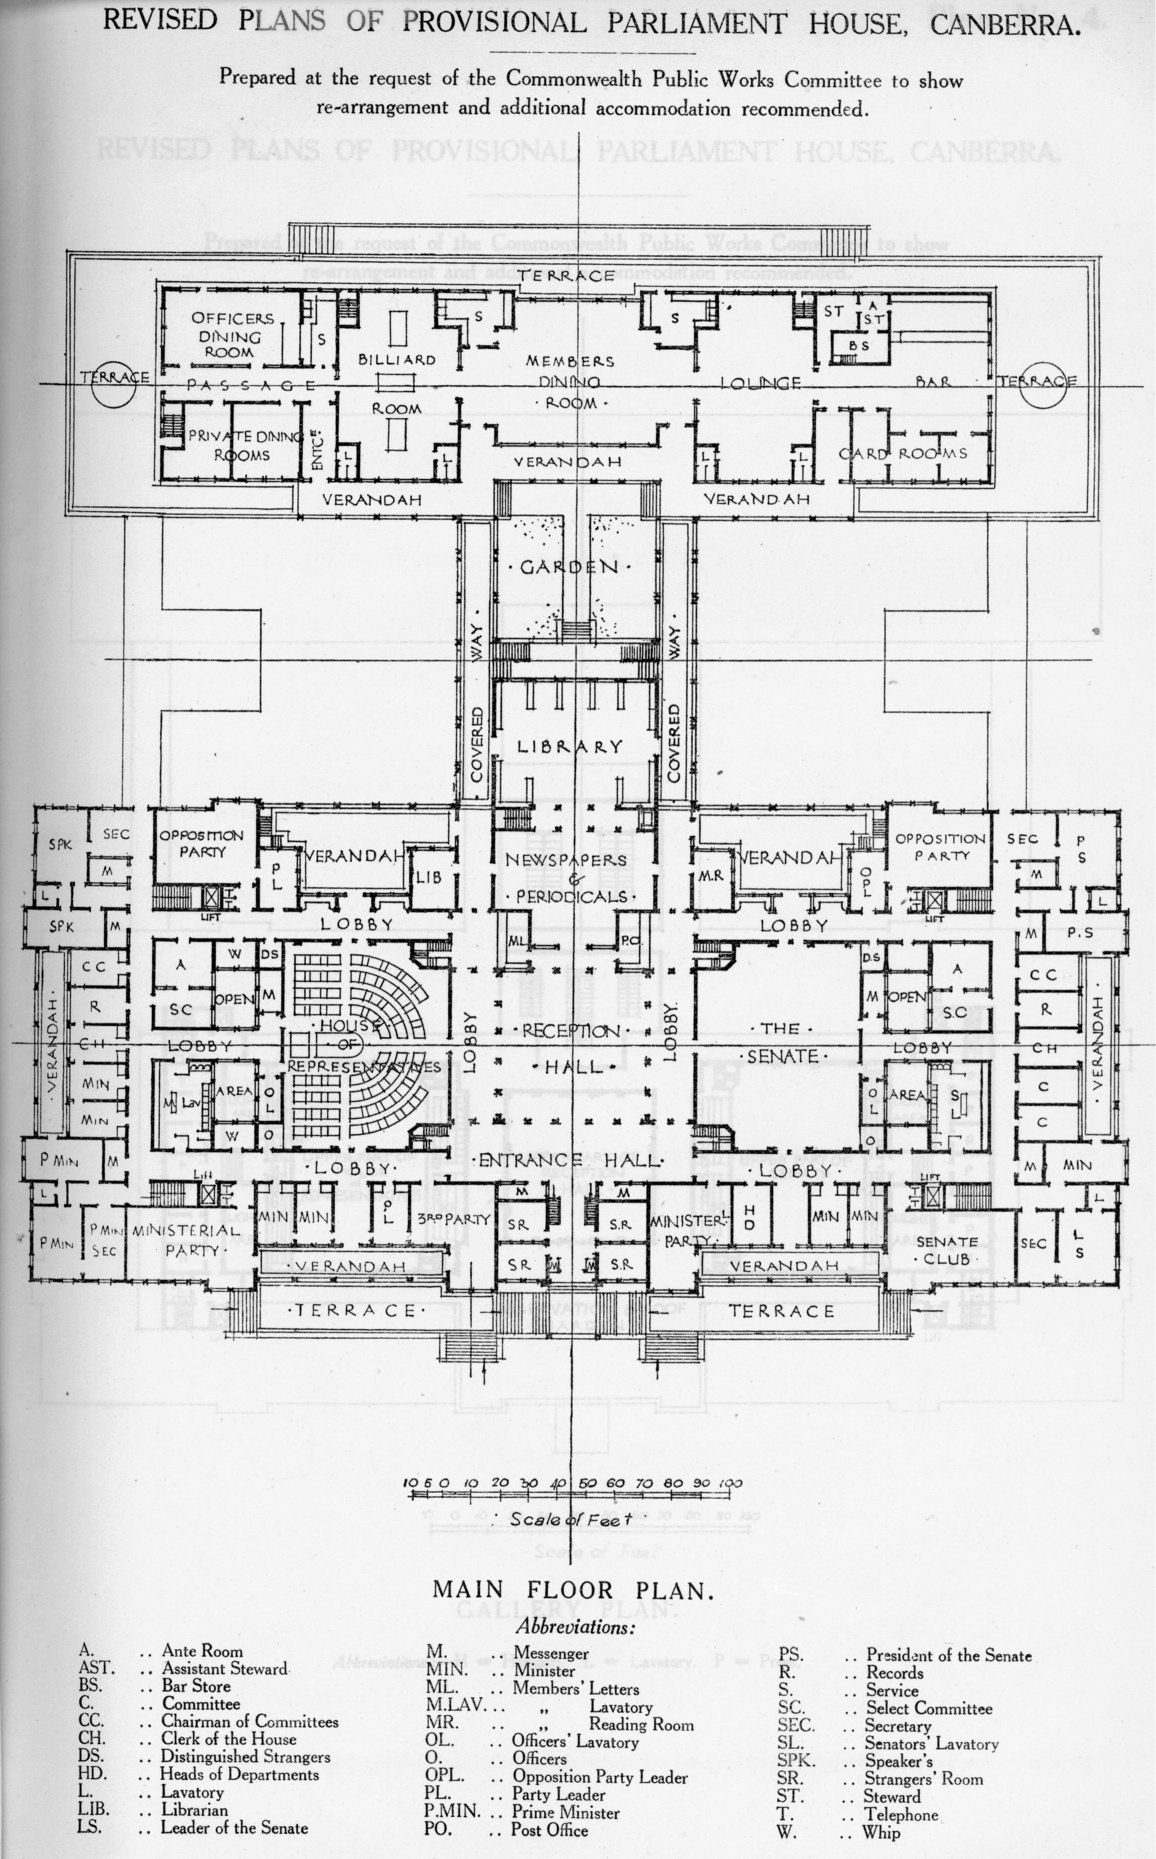 Revised Main Floor Plans Of Provisional Parliament House